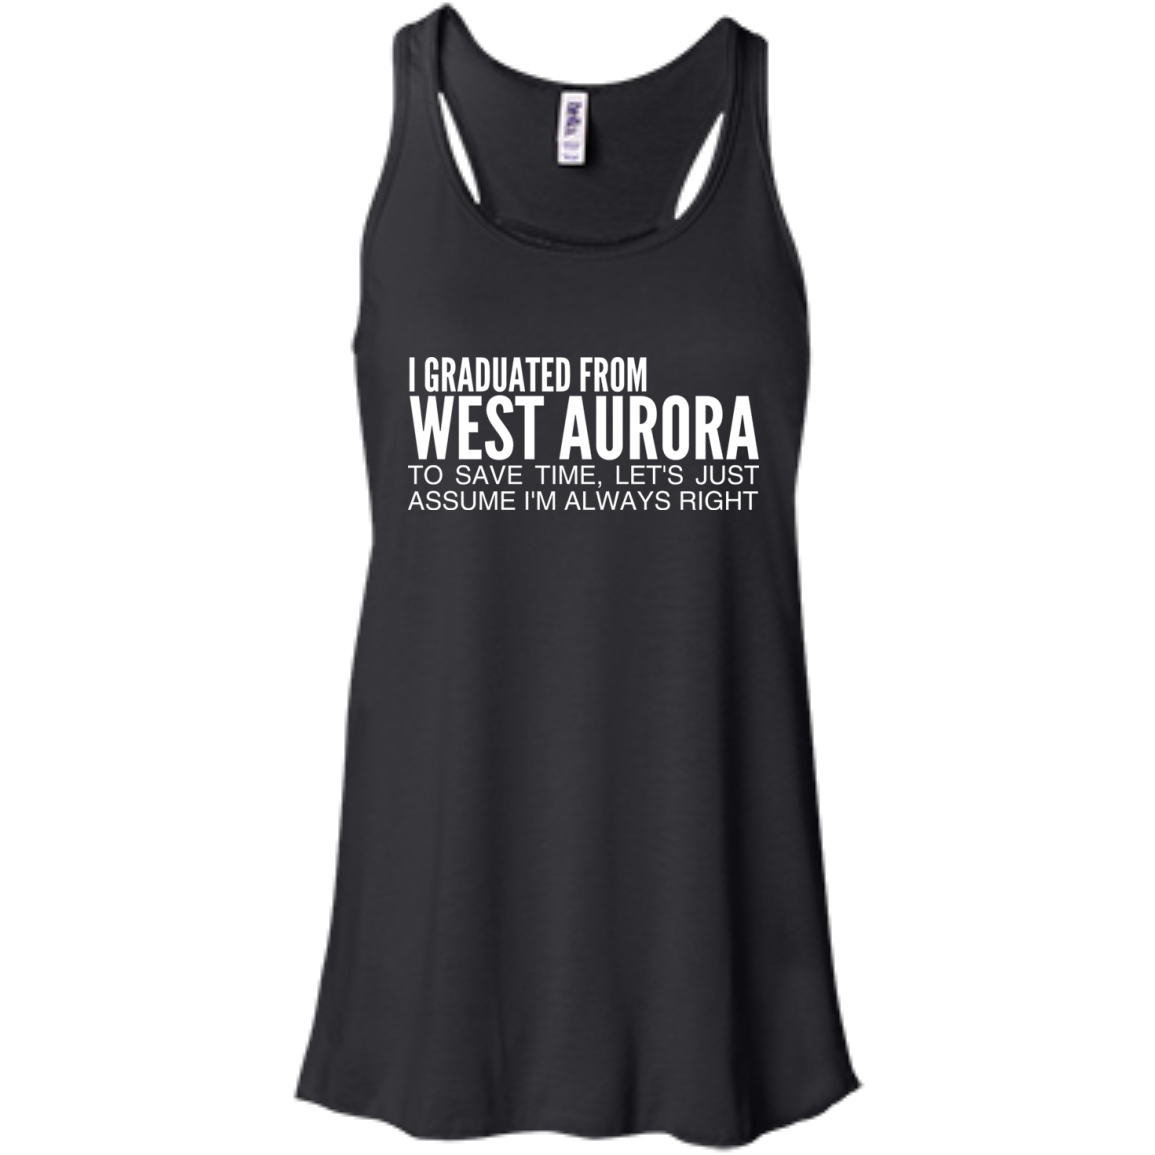 I Graduated From West Aurora To Save Time Lets Just Assume Im Always Right Flowy Racerback Tanks